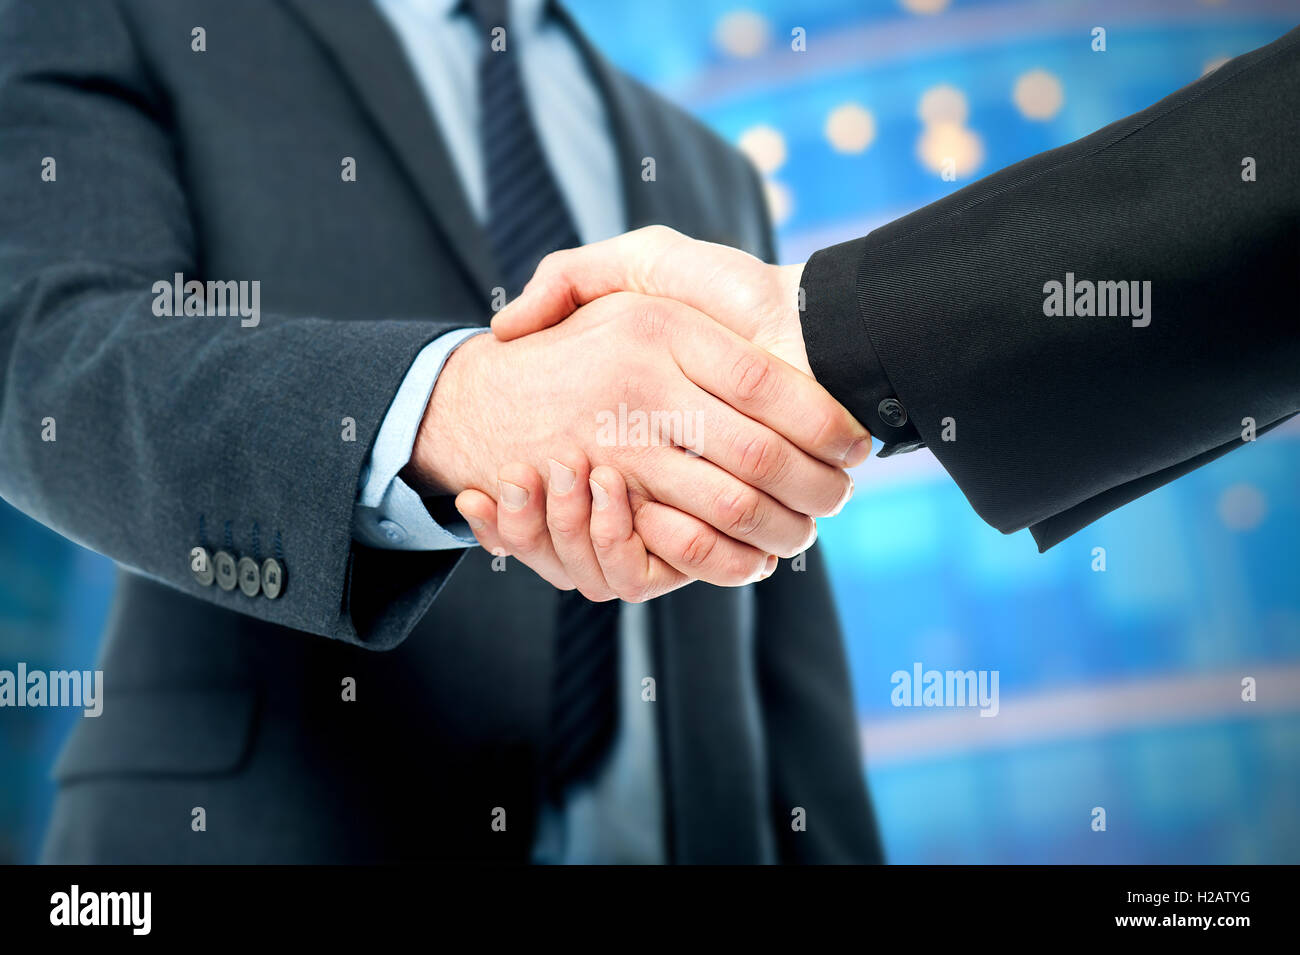 Business deal finalized, congratulations! - Stock Image